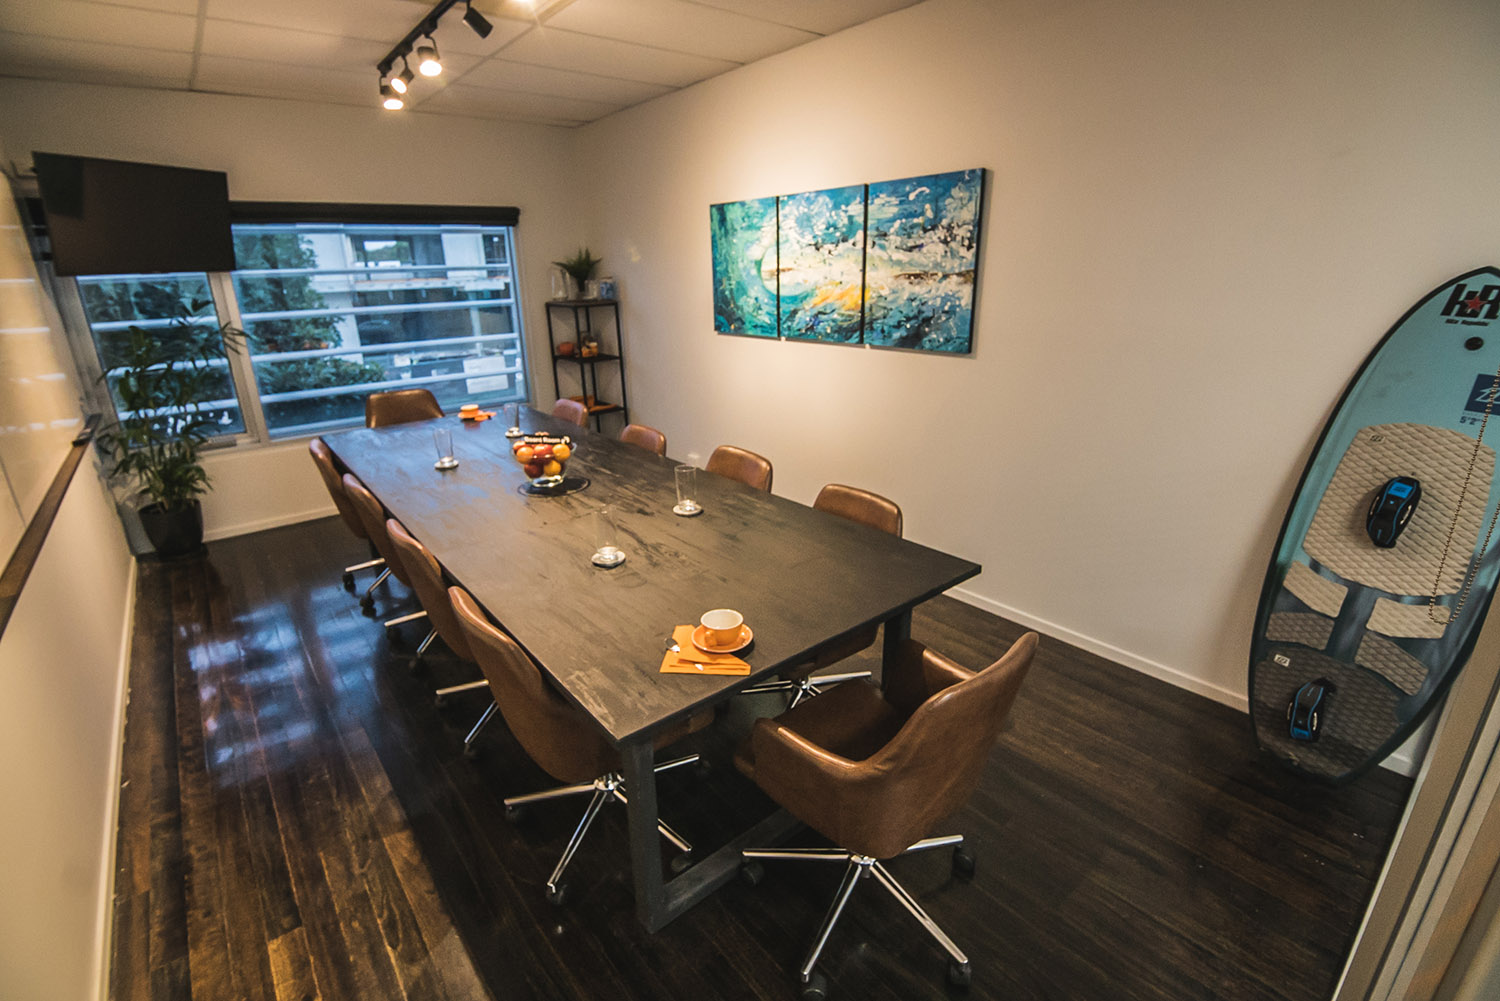 Boardroom - Available for external hire at $100 (excl. GST) per hour, or $600 for the day (8 hours). Discounted rates for members.